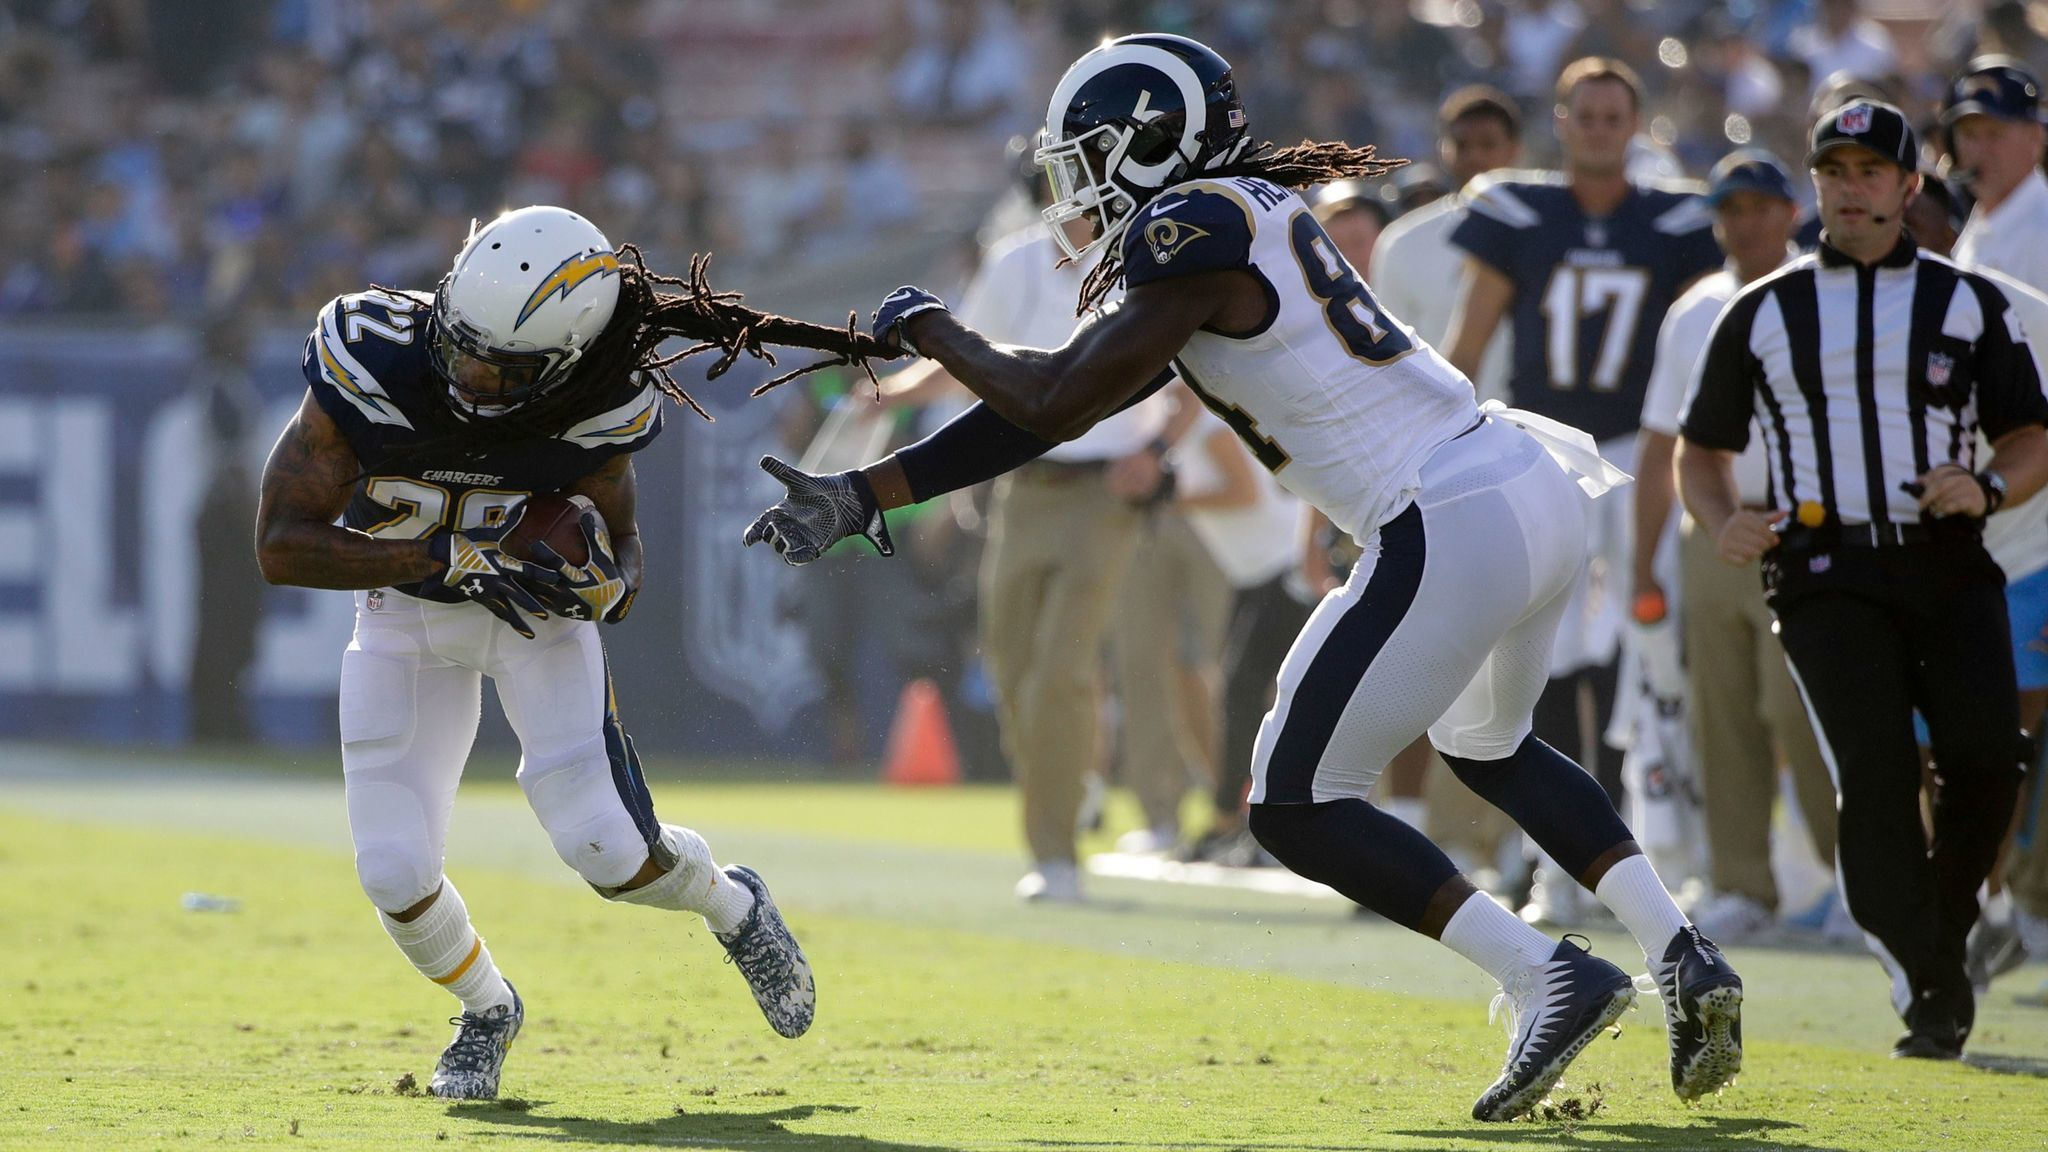 Chargers CB Verrett could be out several weeks The San Diego